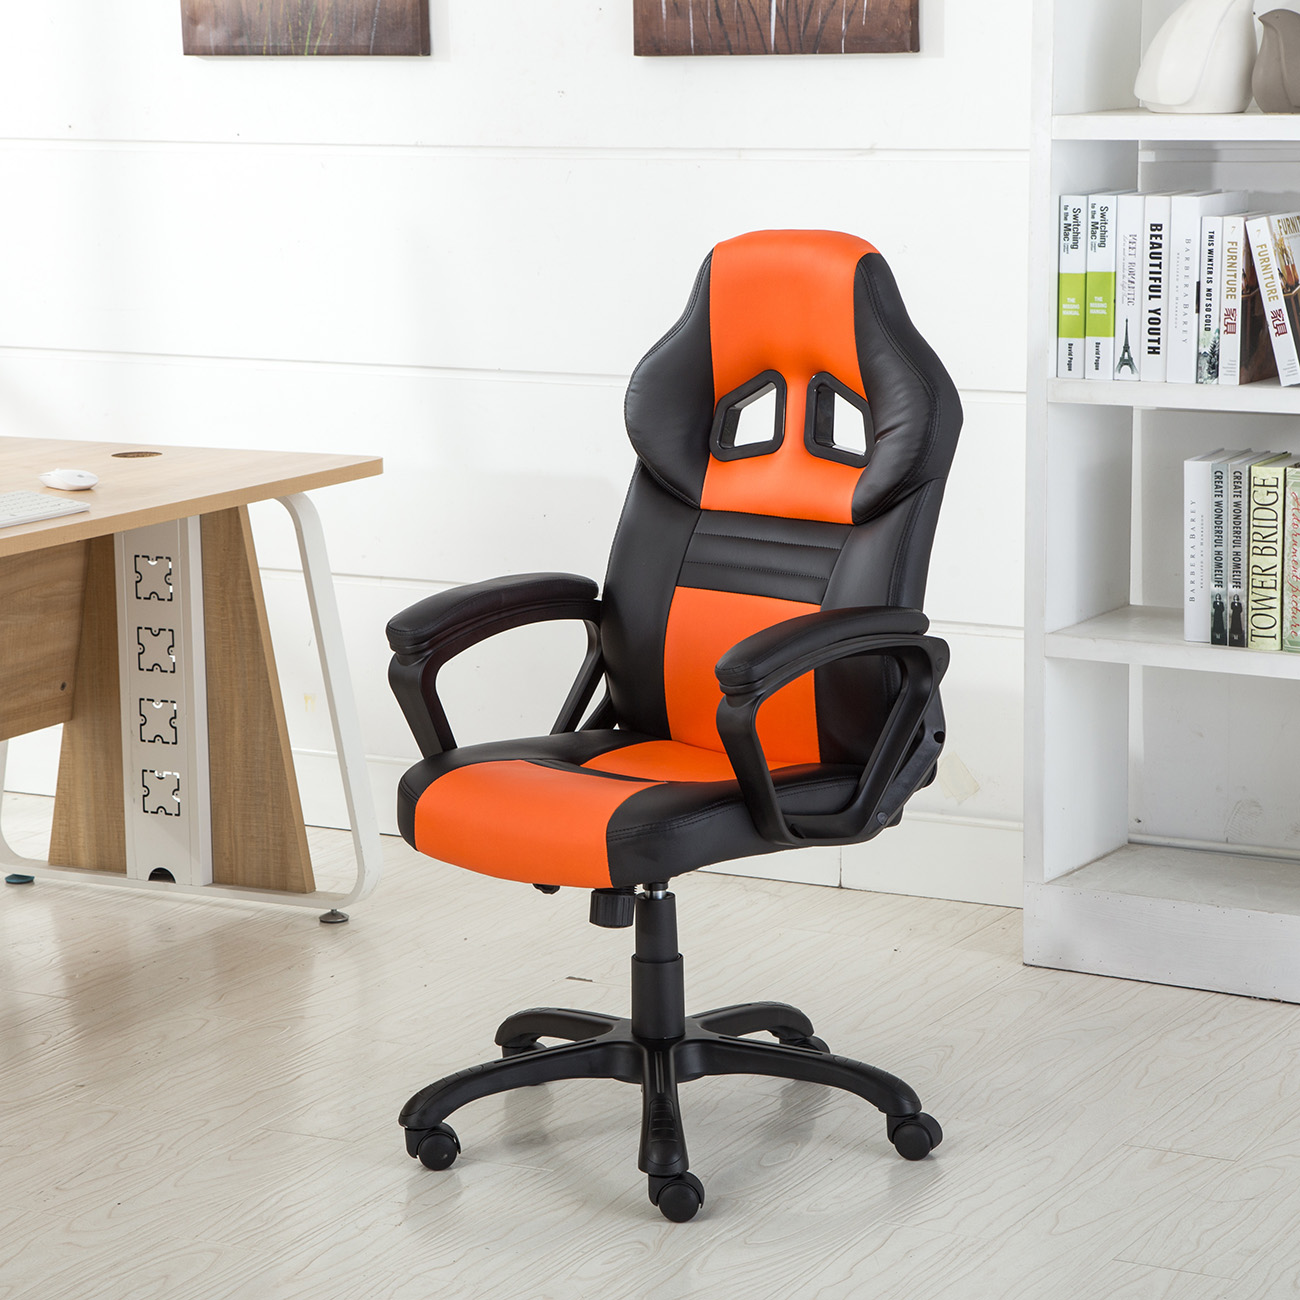 Belleze Executive Racing Office Chair Leather Swivel Computer Desk Seat High-Back, Orange